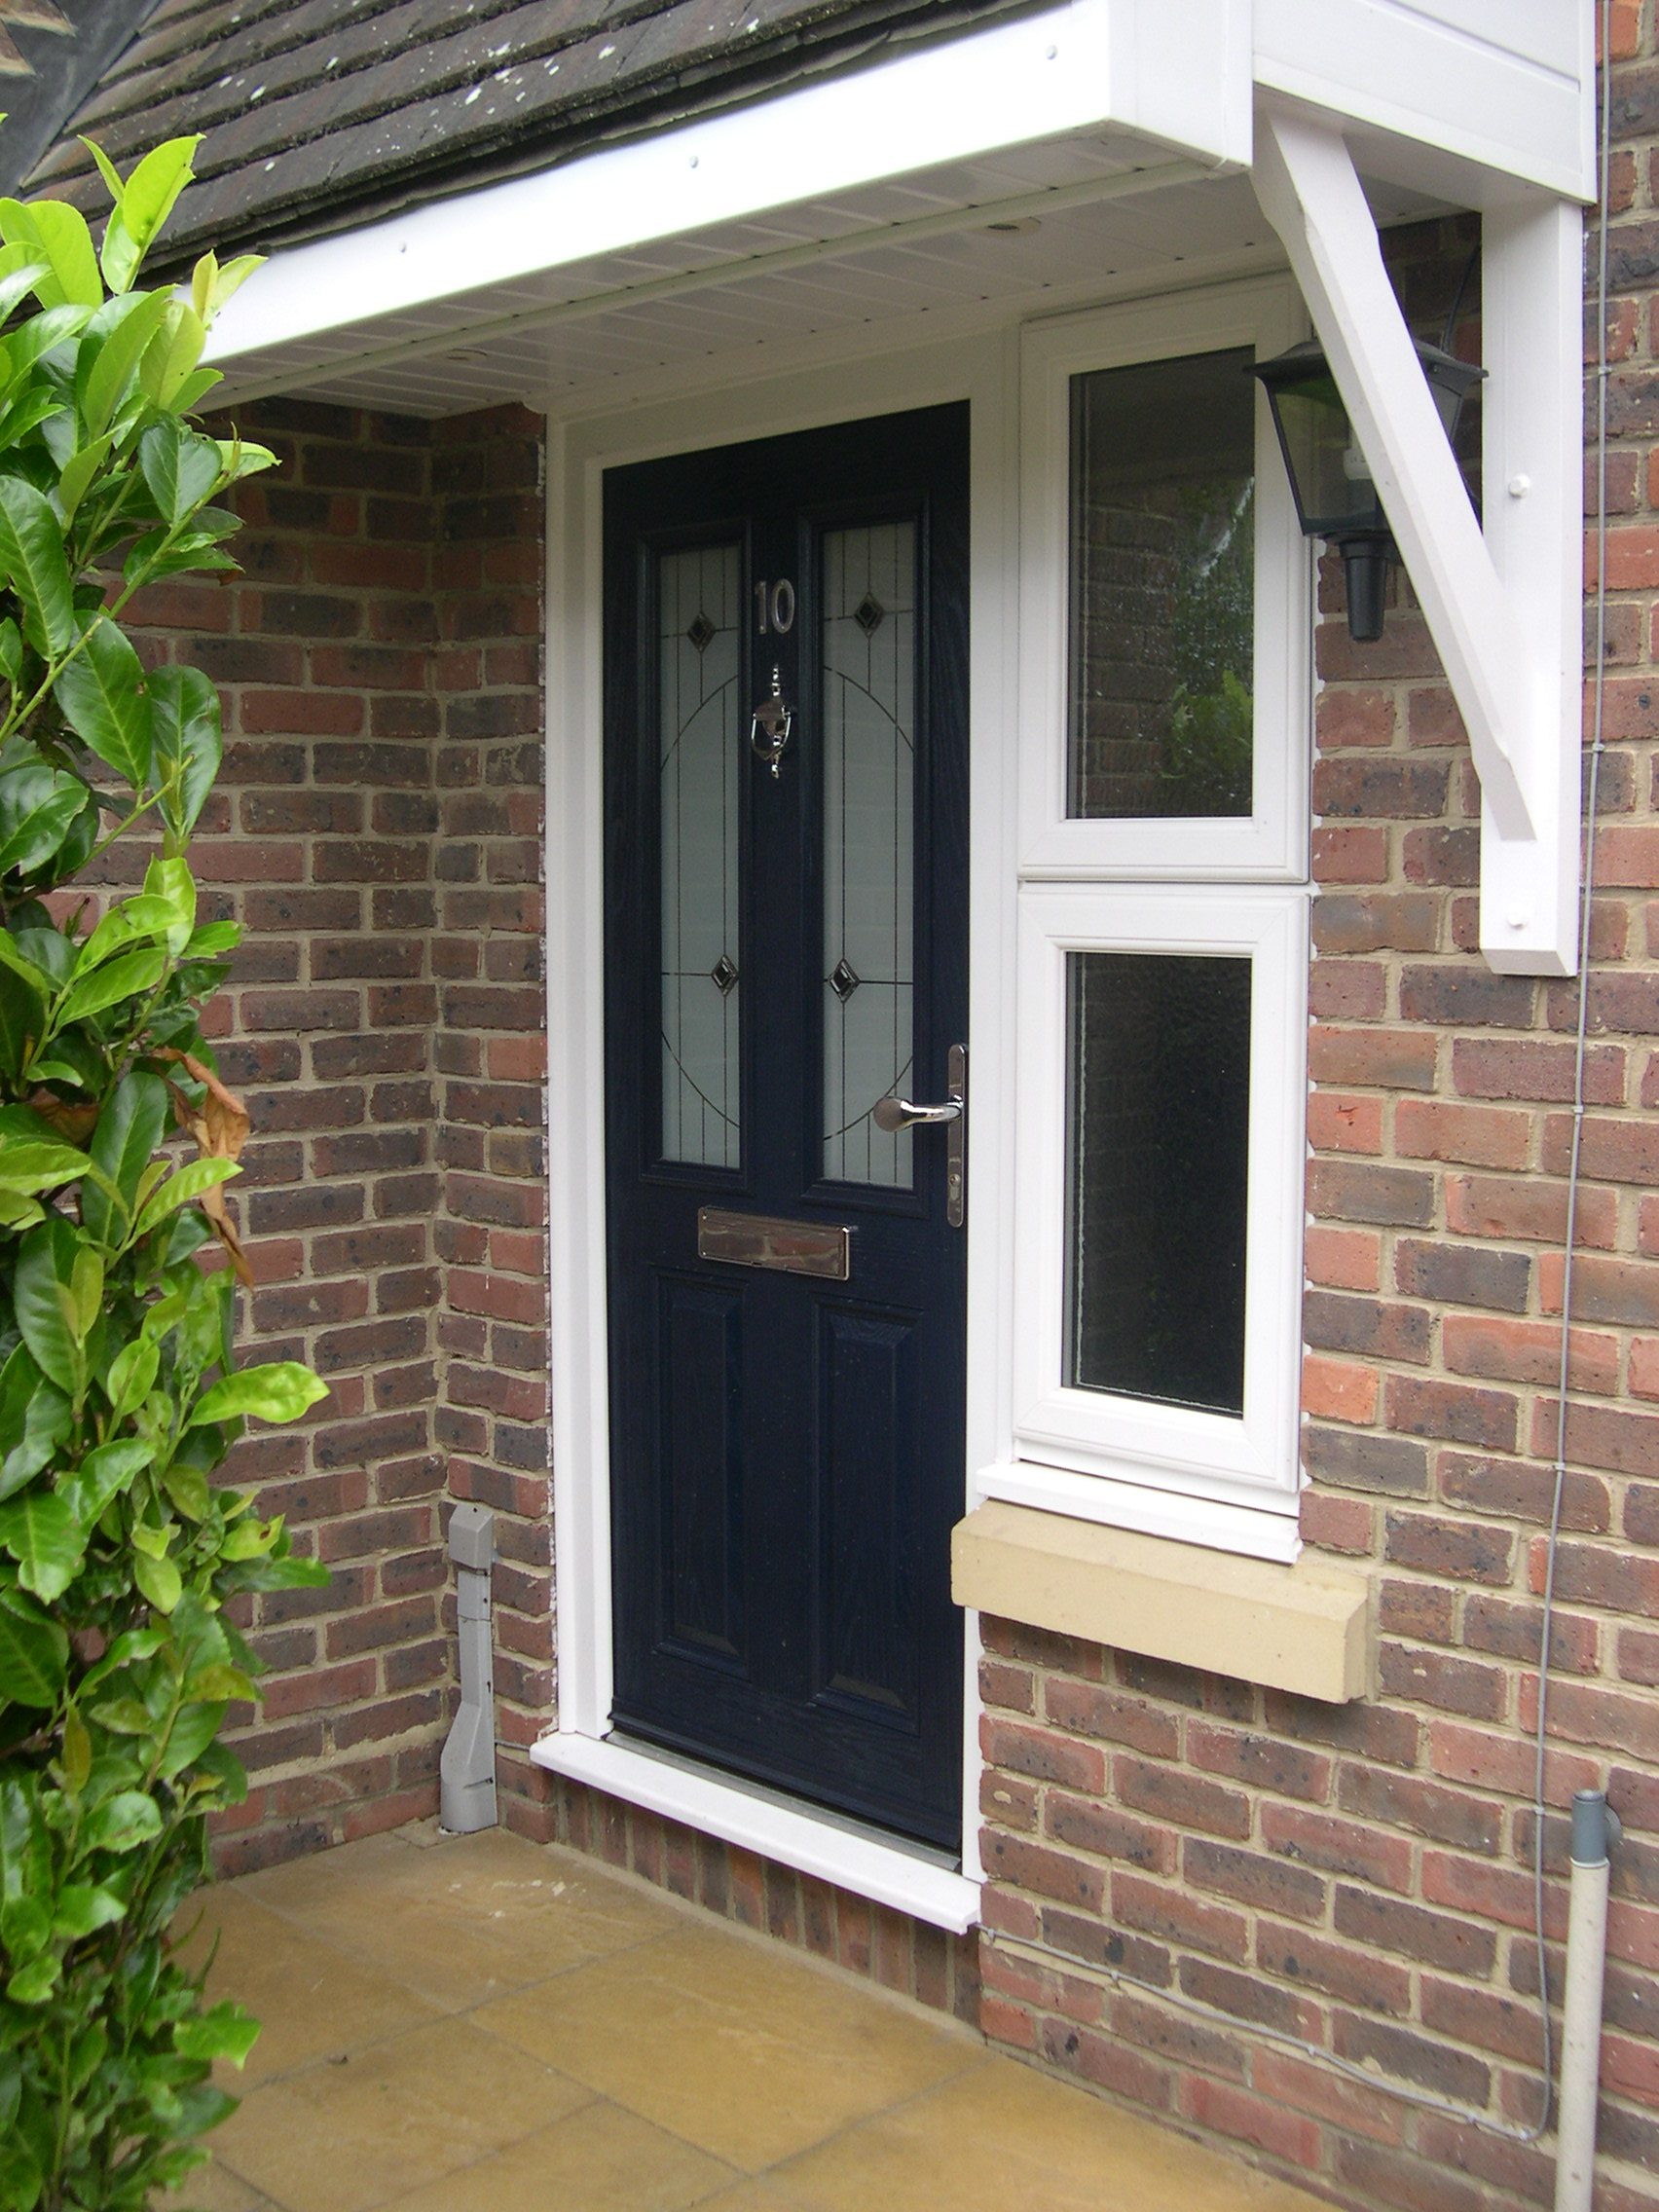 New windows doors jcs external solutions for New windows doors